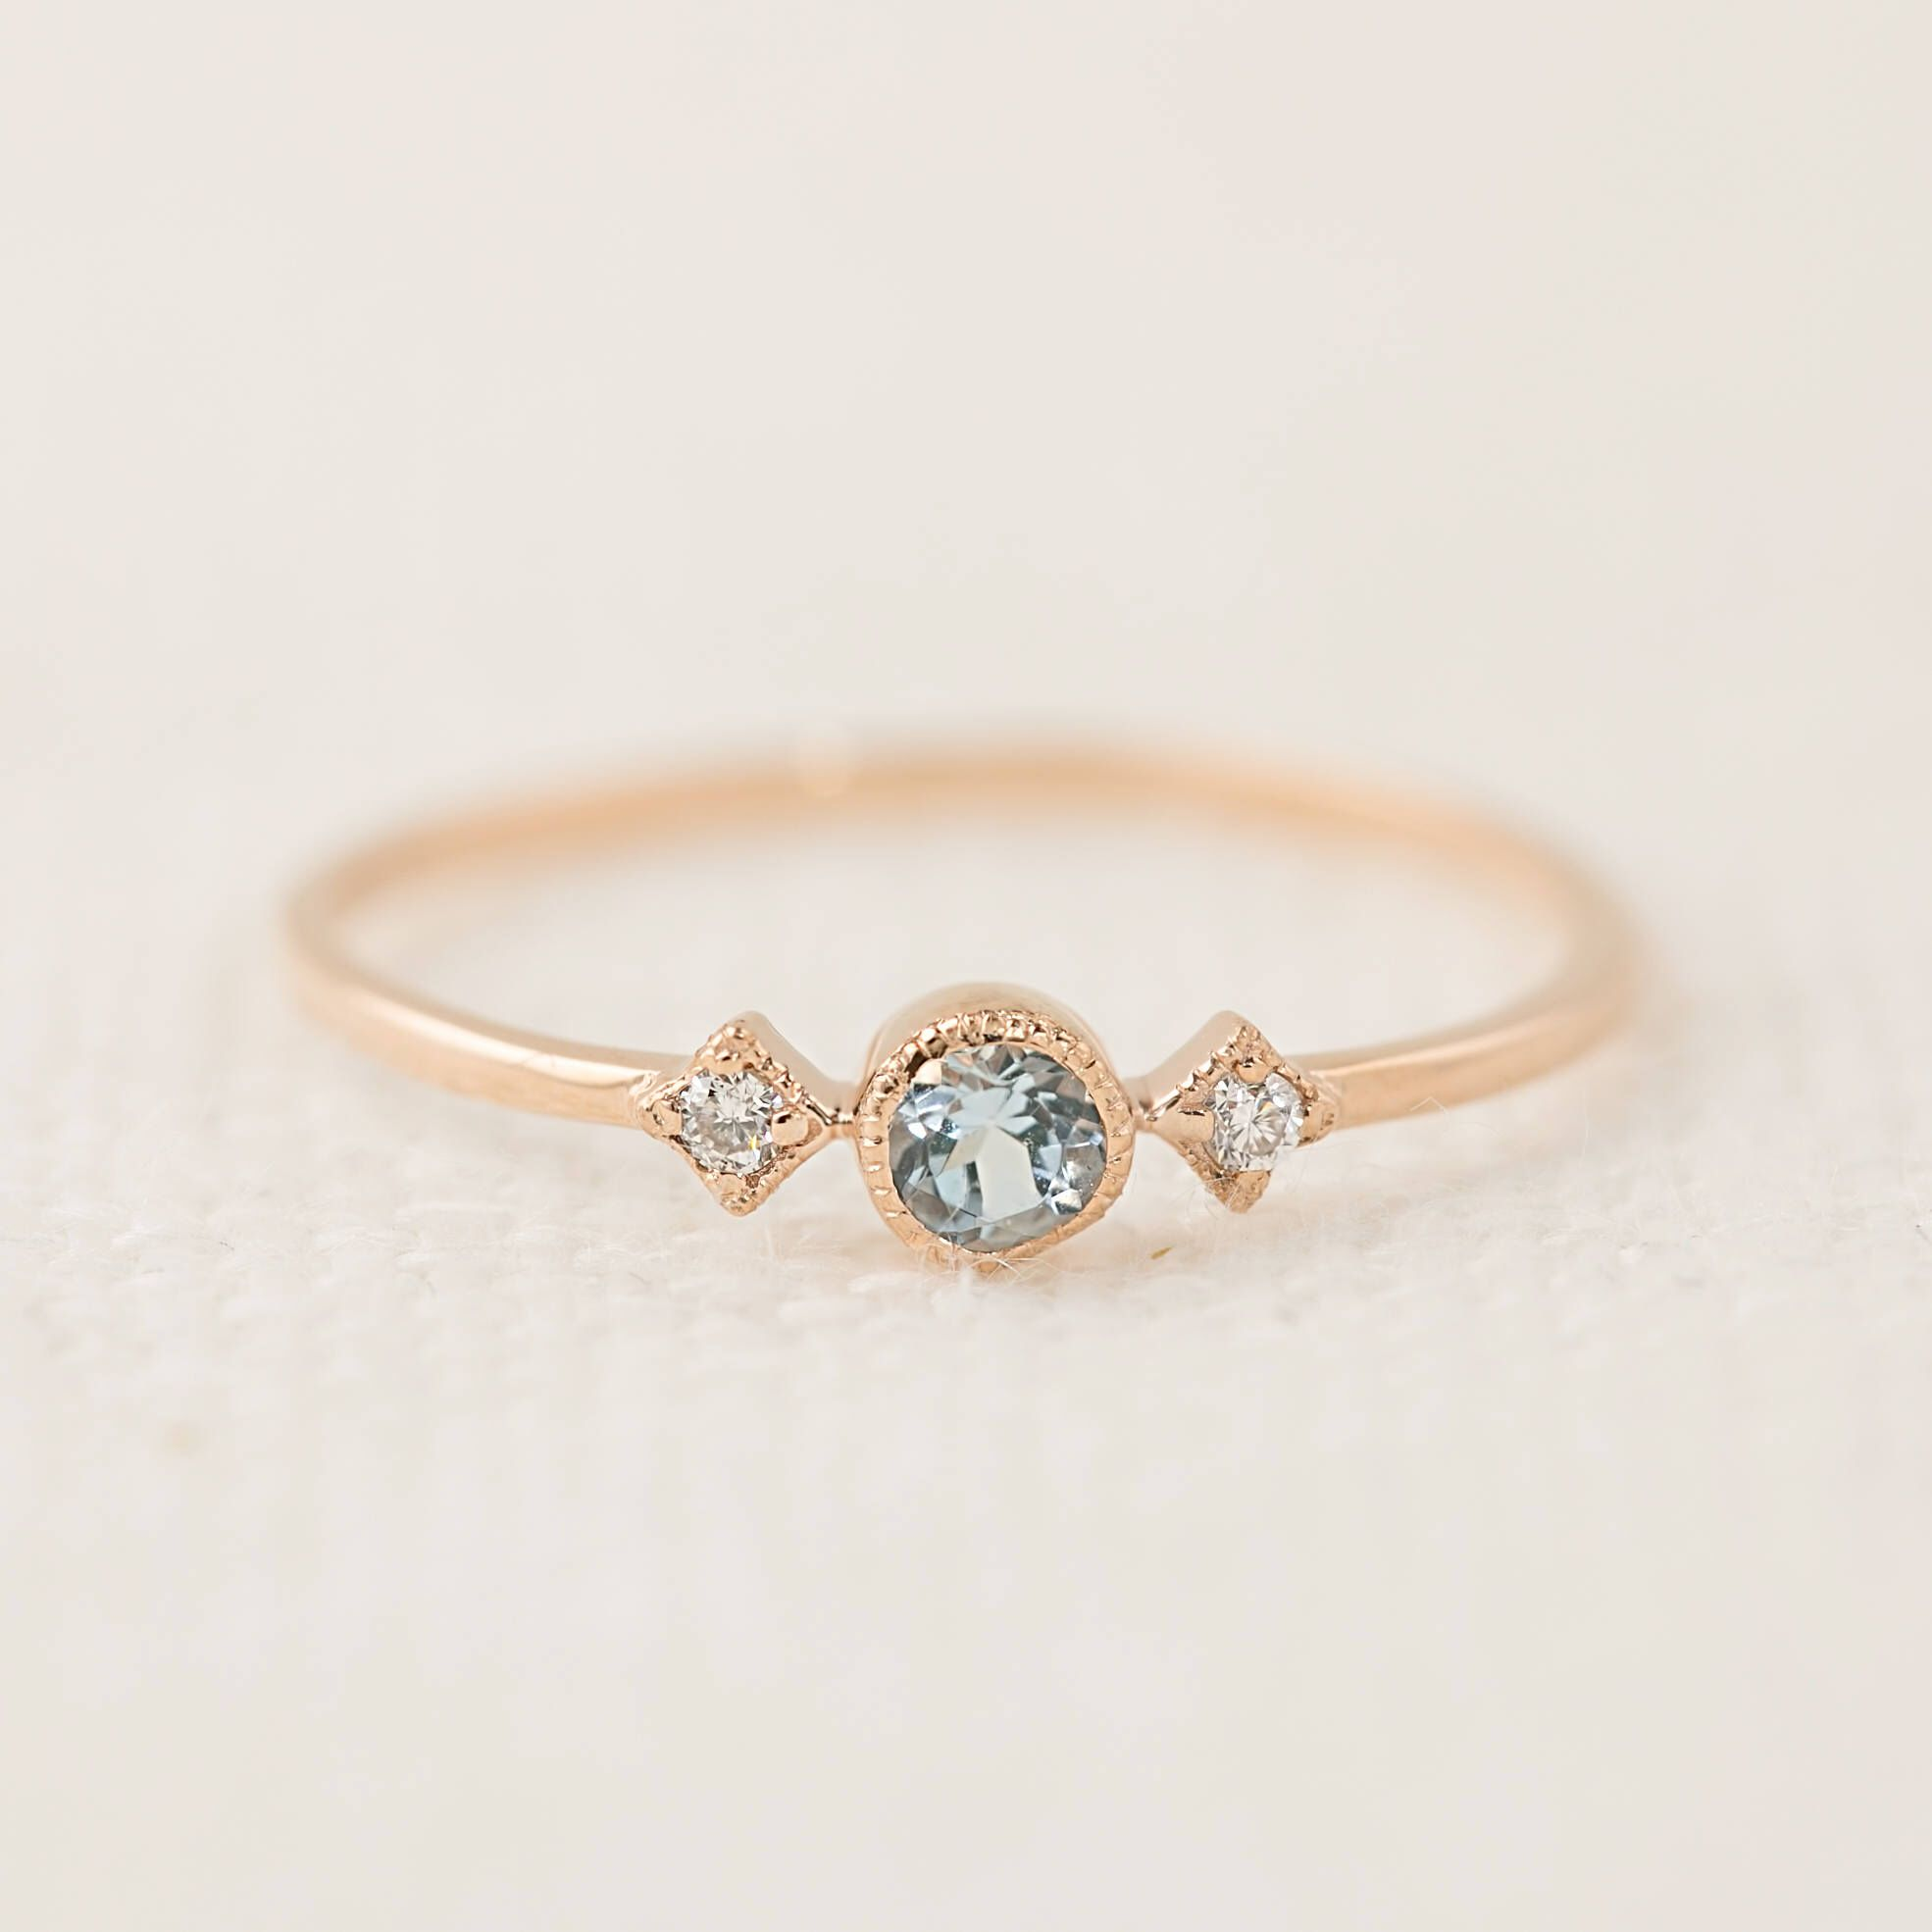 engagement gold pin xx diamond handmade and solitaire modern classic hex forever timeless bespoke rings ring the bride whitediamond diamonds white